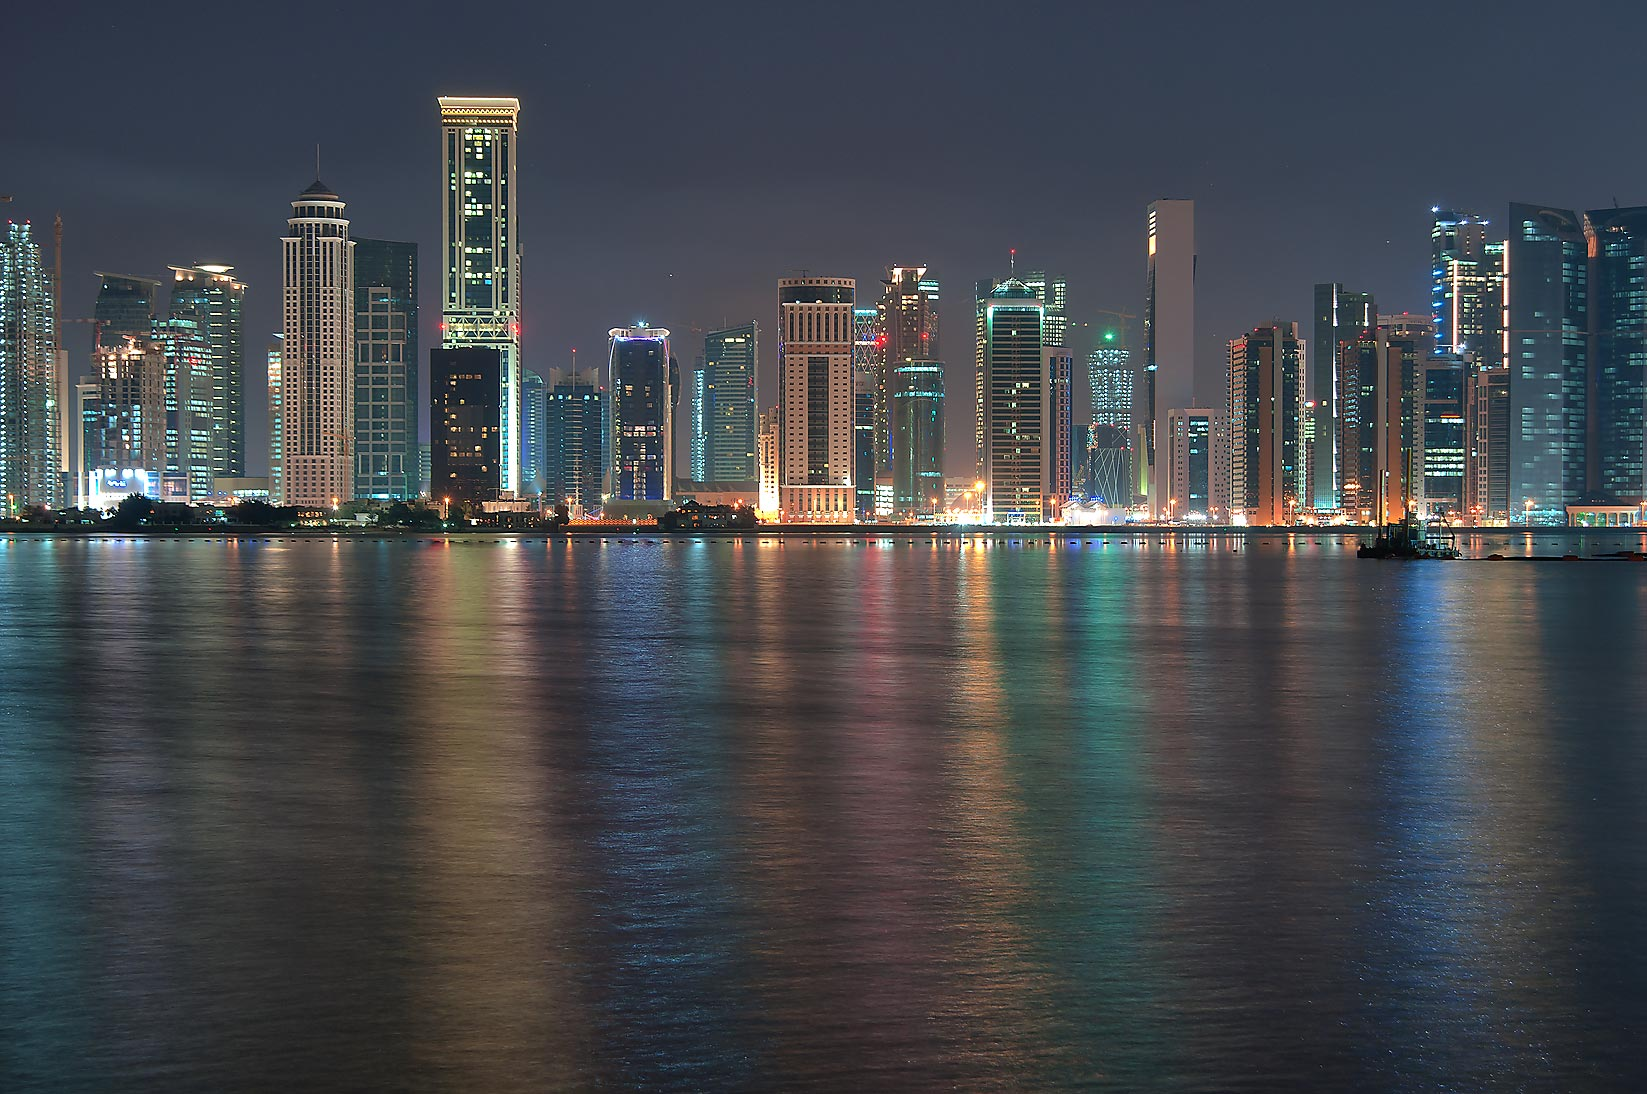 Diplomatic area of West Bay from a beach near...Hotel before sunrise. Doha, Qatar